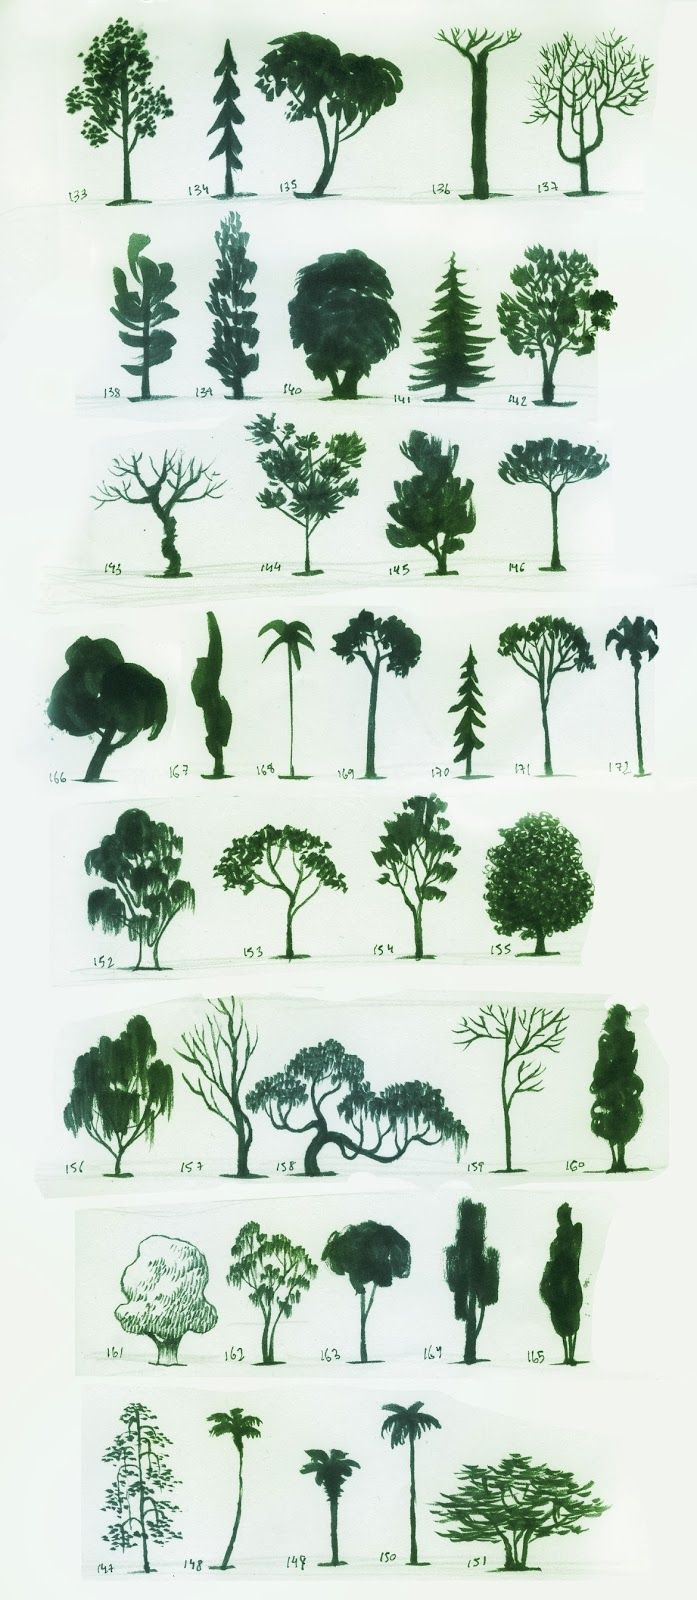 Different trees